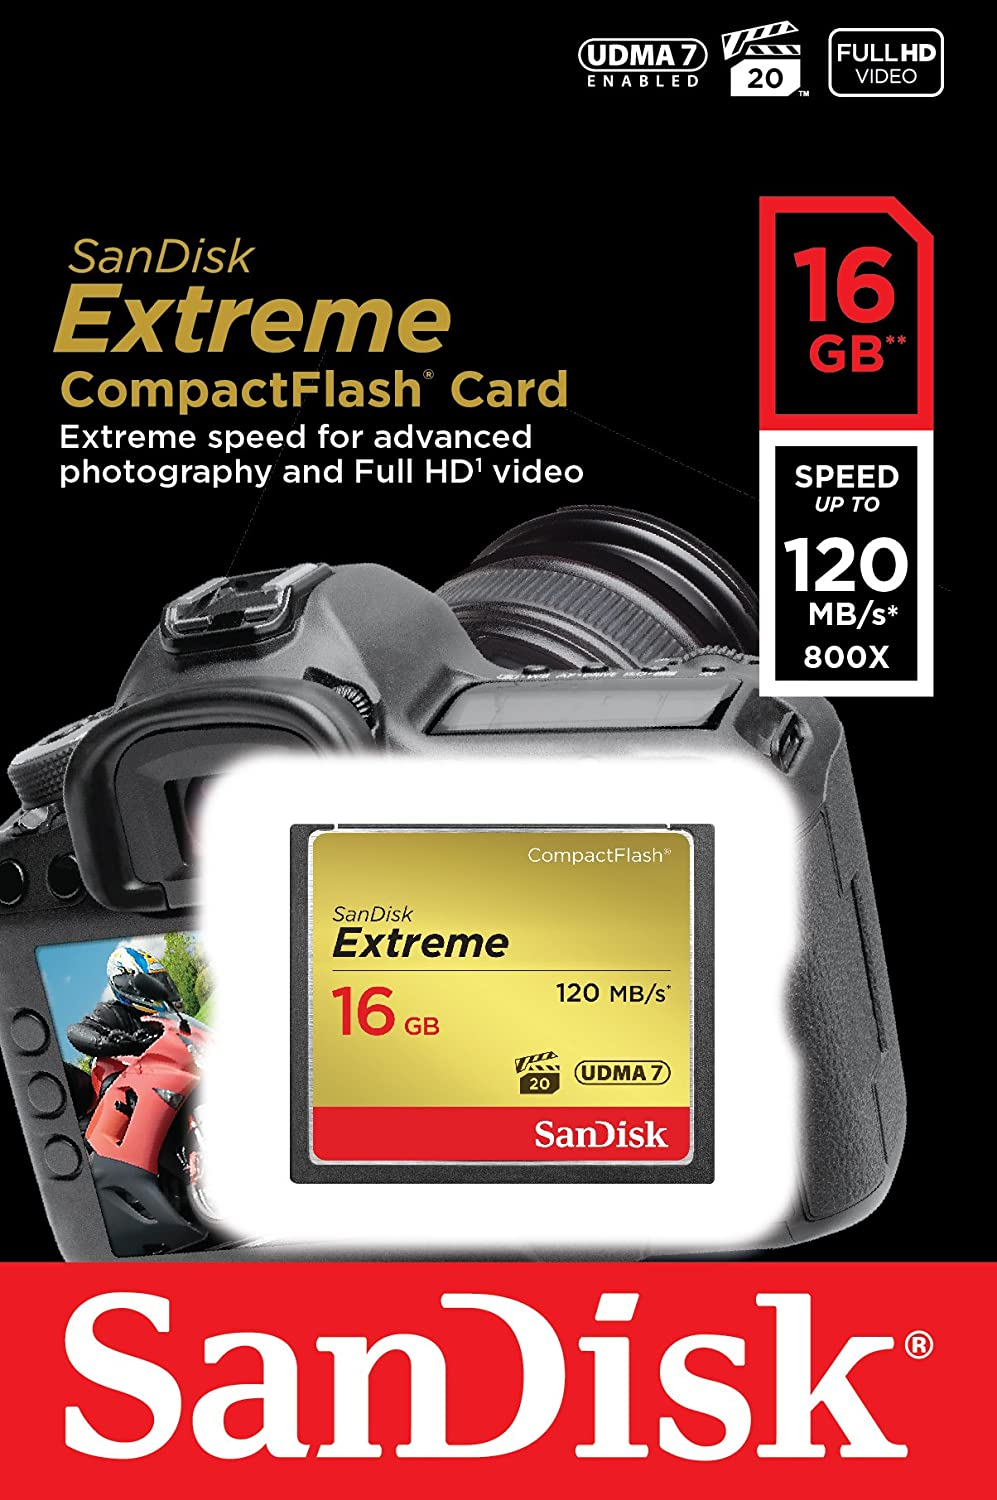 Includes Standard SD Adapter. lossless recording Professional Ultra SanDisk 16GB MicroSDHC Garmin nuvi 2789LMT card is custom formatted for high speed UHS-1 Class 10 Certified 48MB//sec